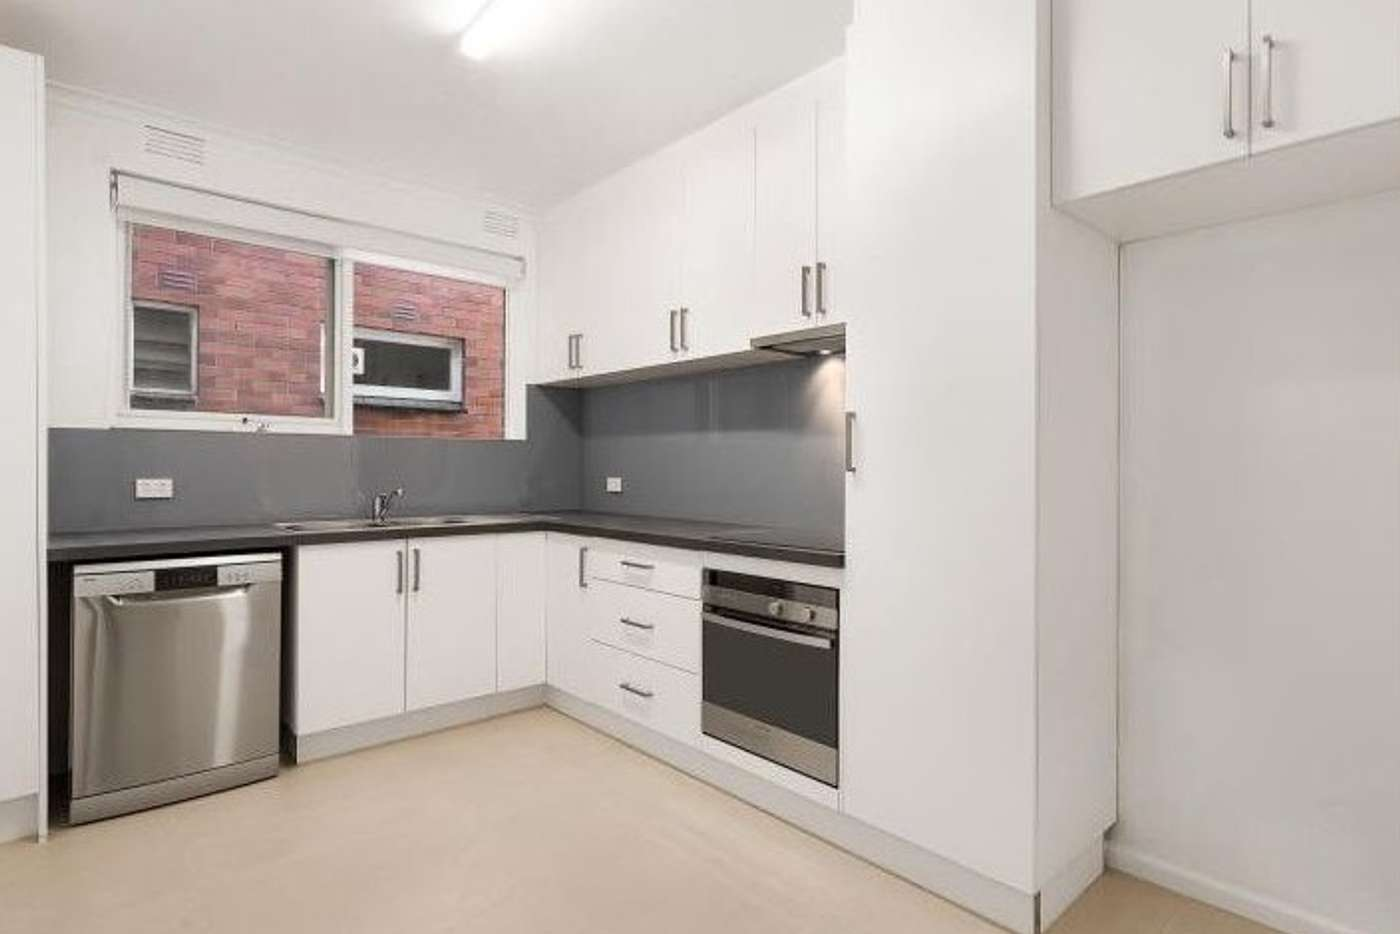 Main view of Homely apartment listing, 2/22 Vickery Street, Bentleigh VIC 3204